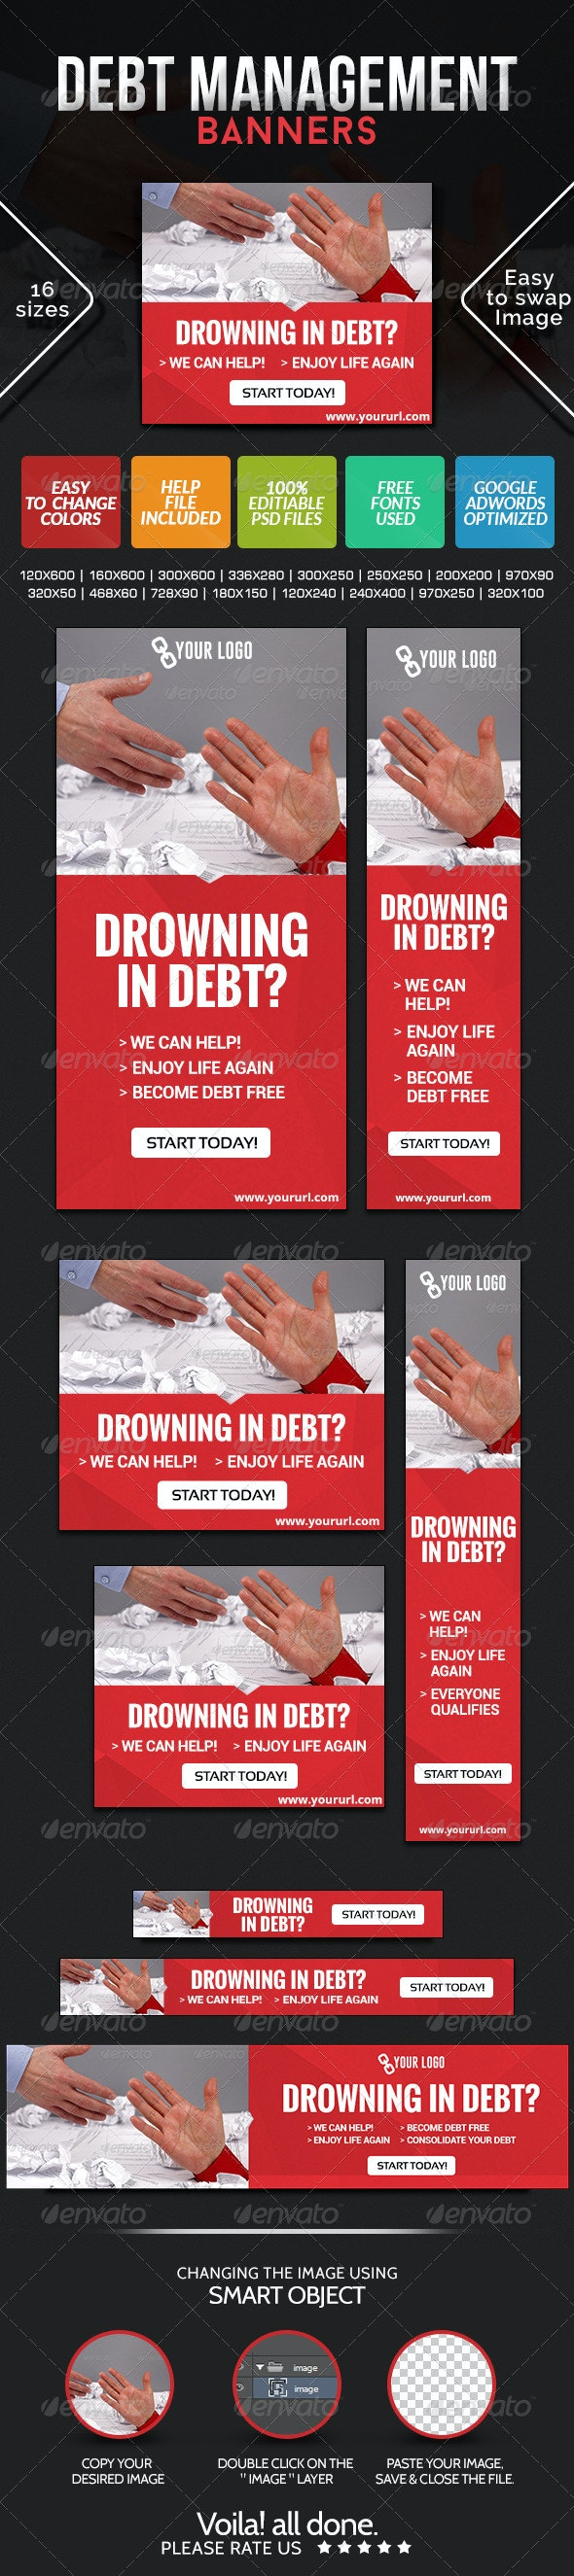 Manage Your Debts Banners - Banners & Ads Web Elements